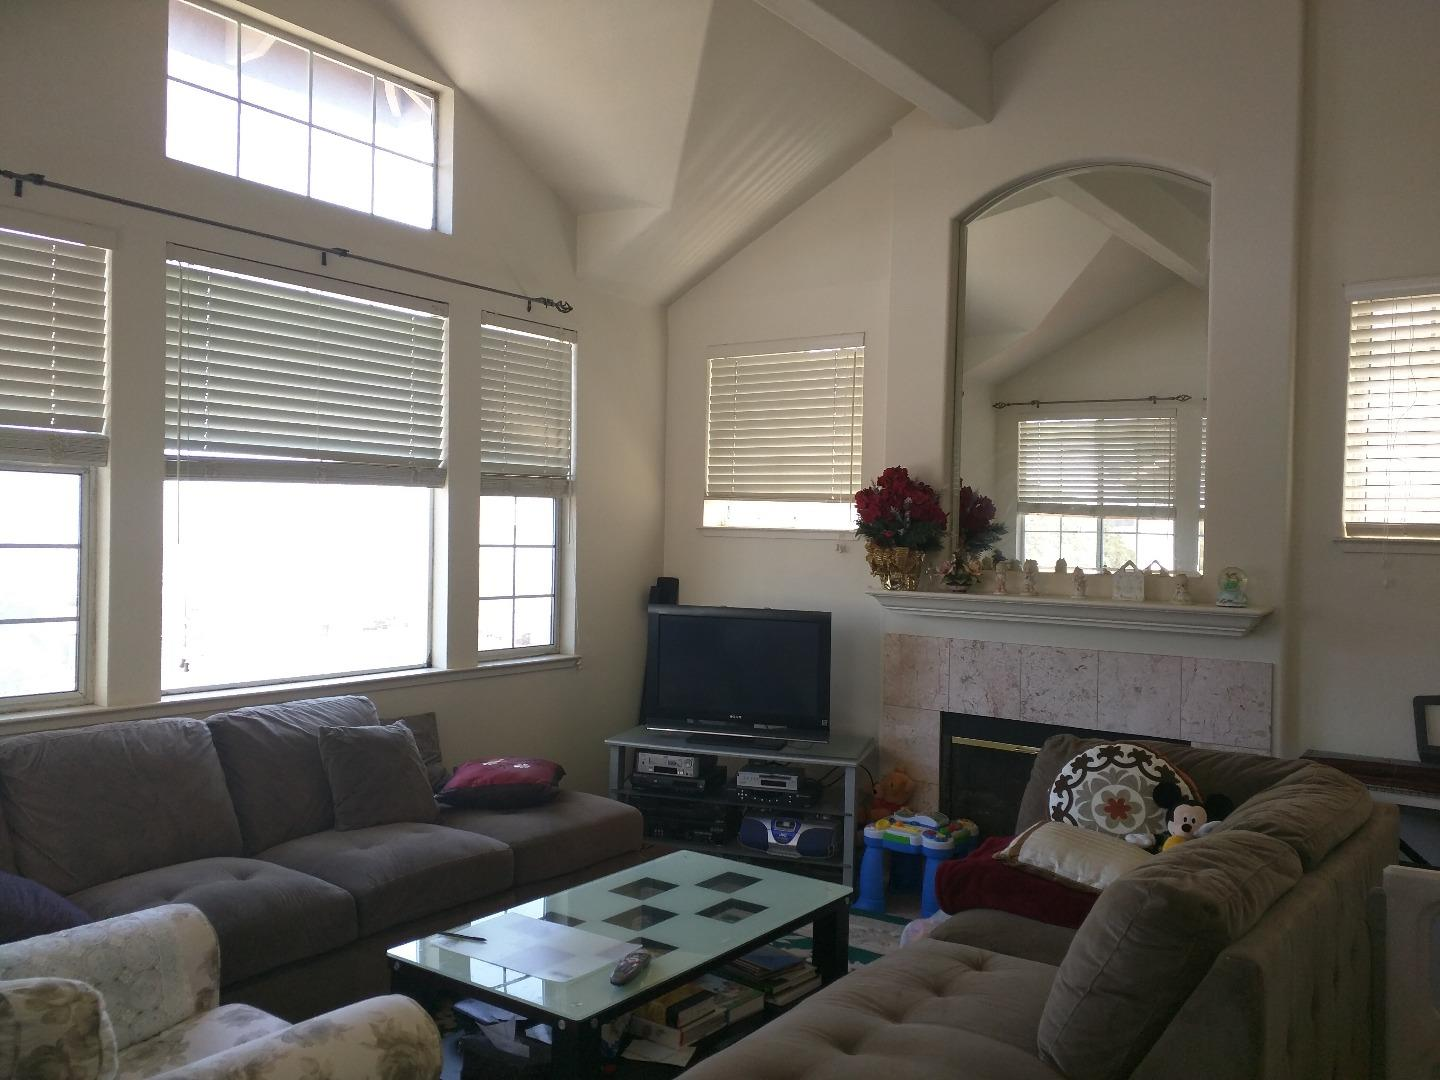 Additional photo for property listing at 7 Sunrise Court  South San Francisco, California 94080 United States